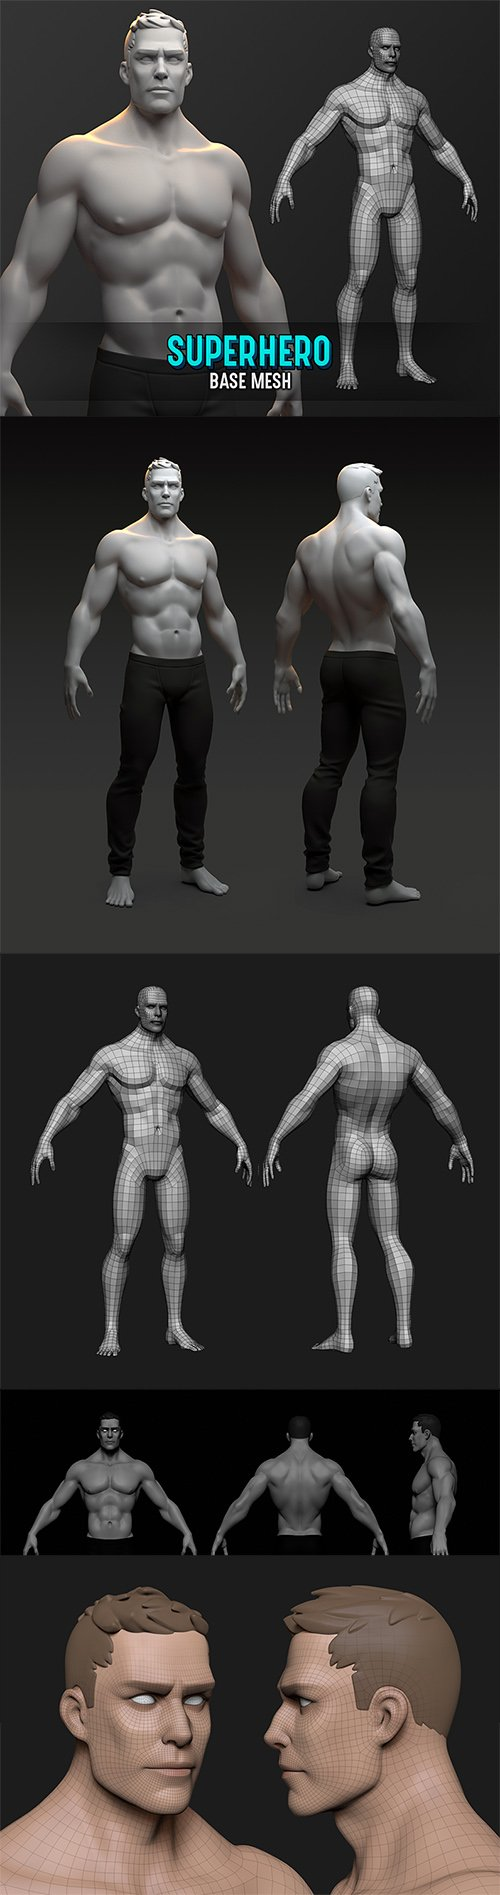 Superhero Base Mesh